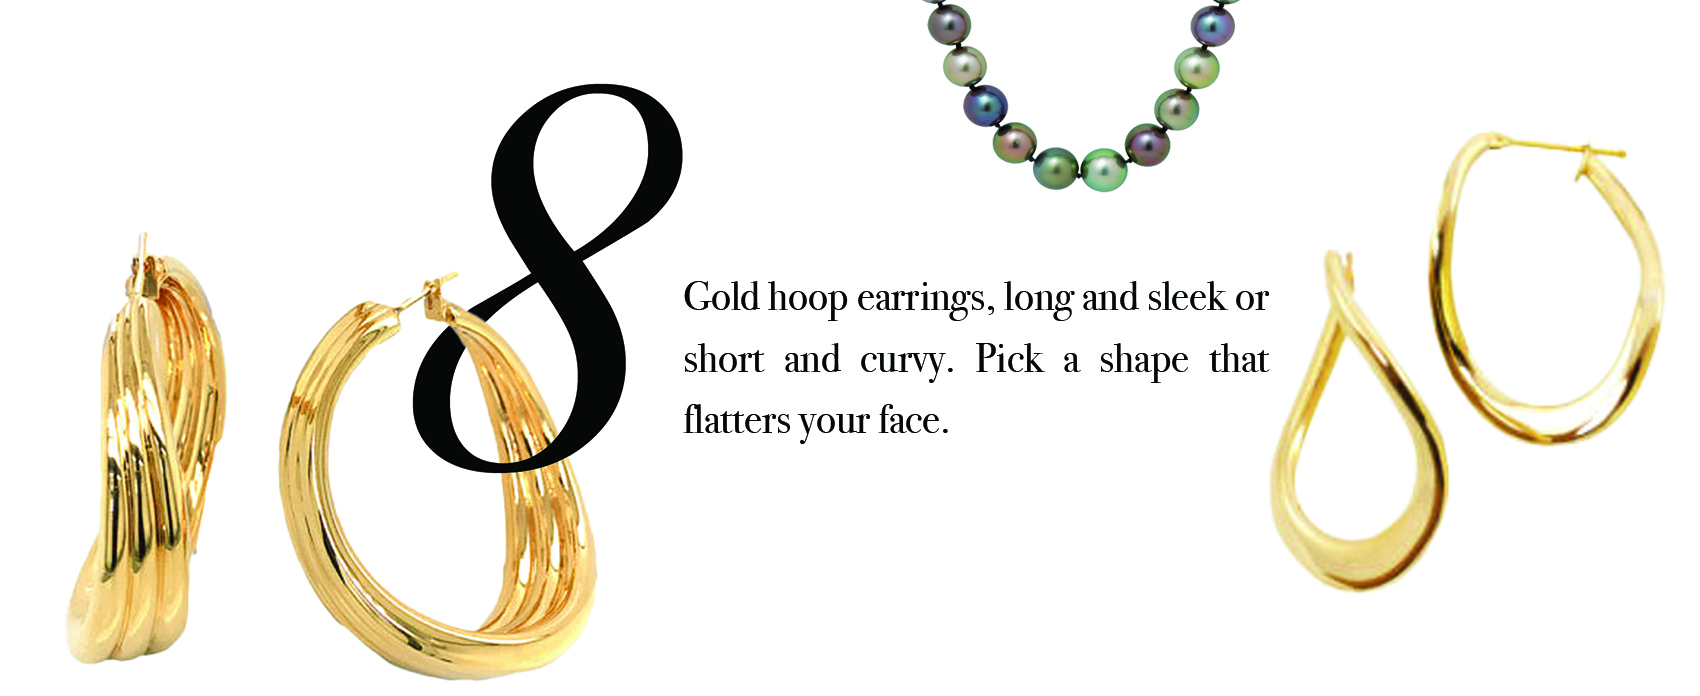 Your Jewelry Wardrobe Tip #8: Gold hoop earrings, long and sleek or short and curvy. Pick a shape that flatters your face.